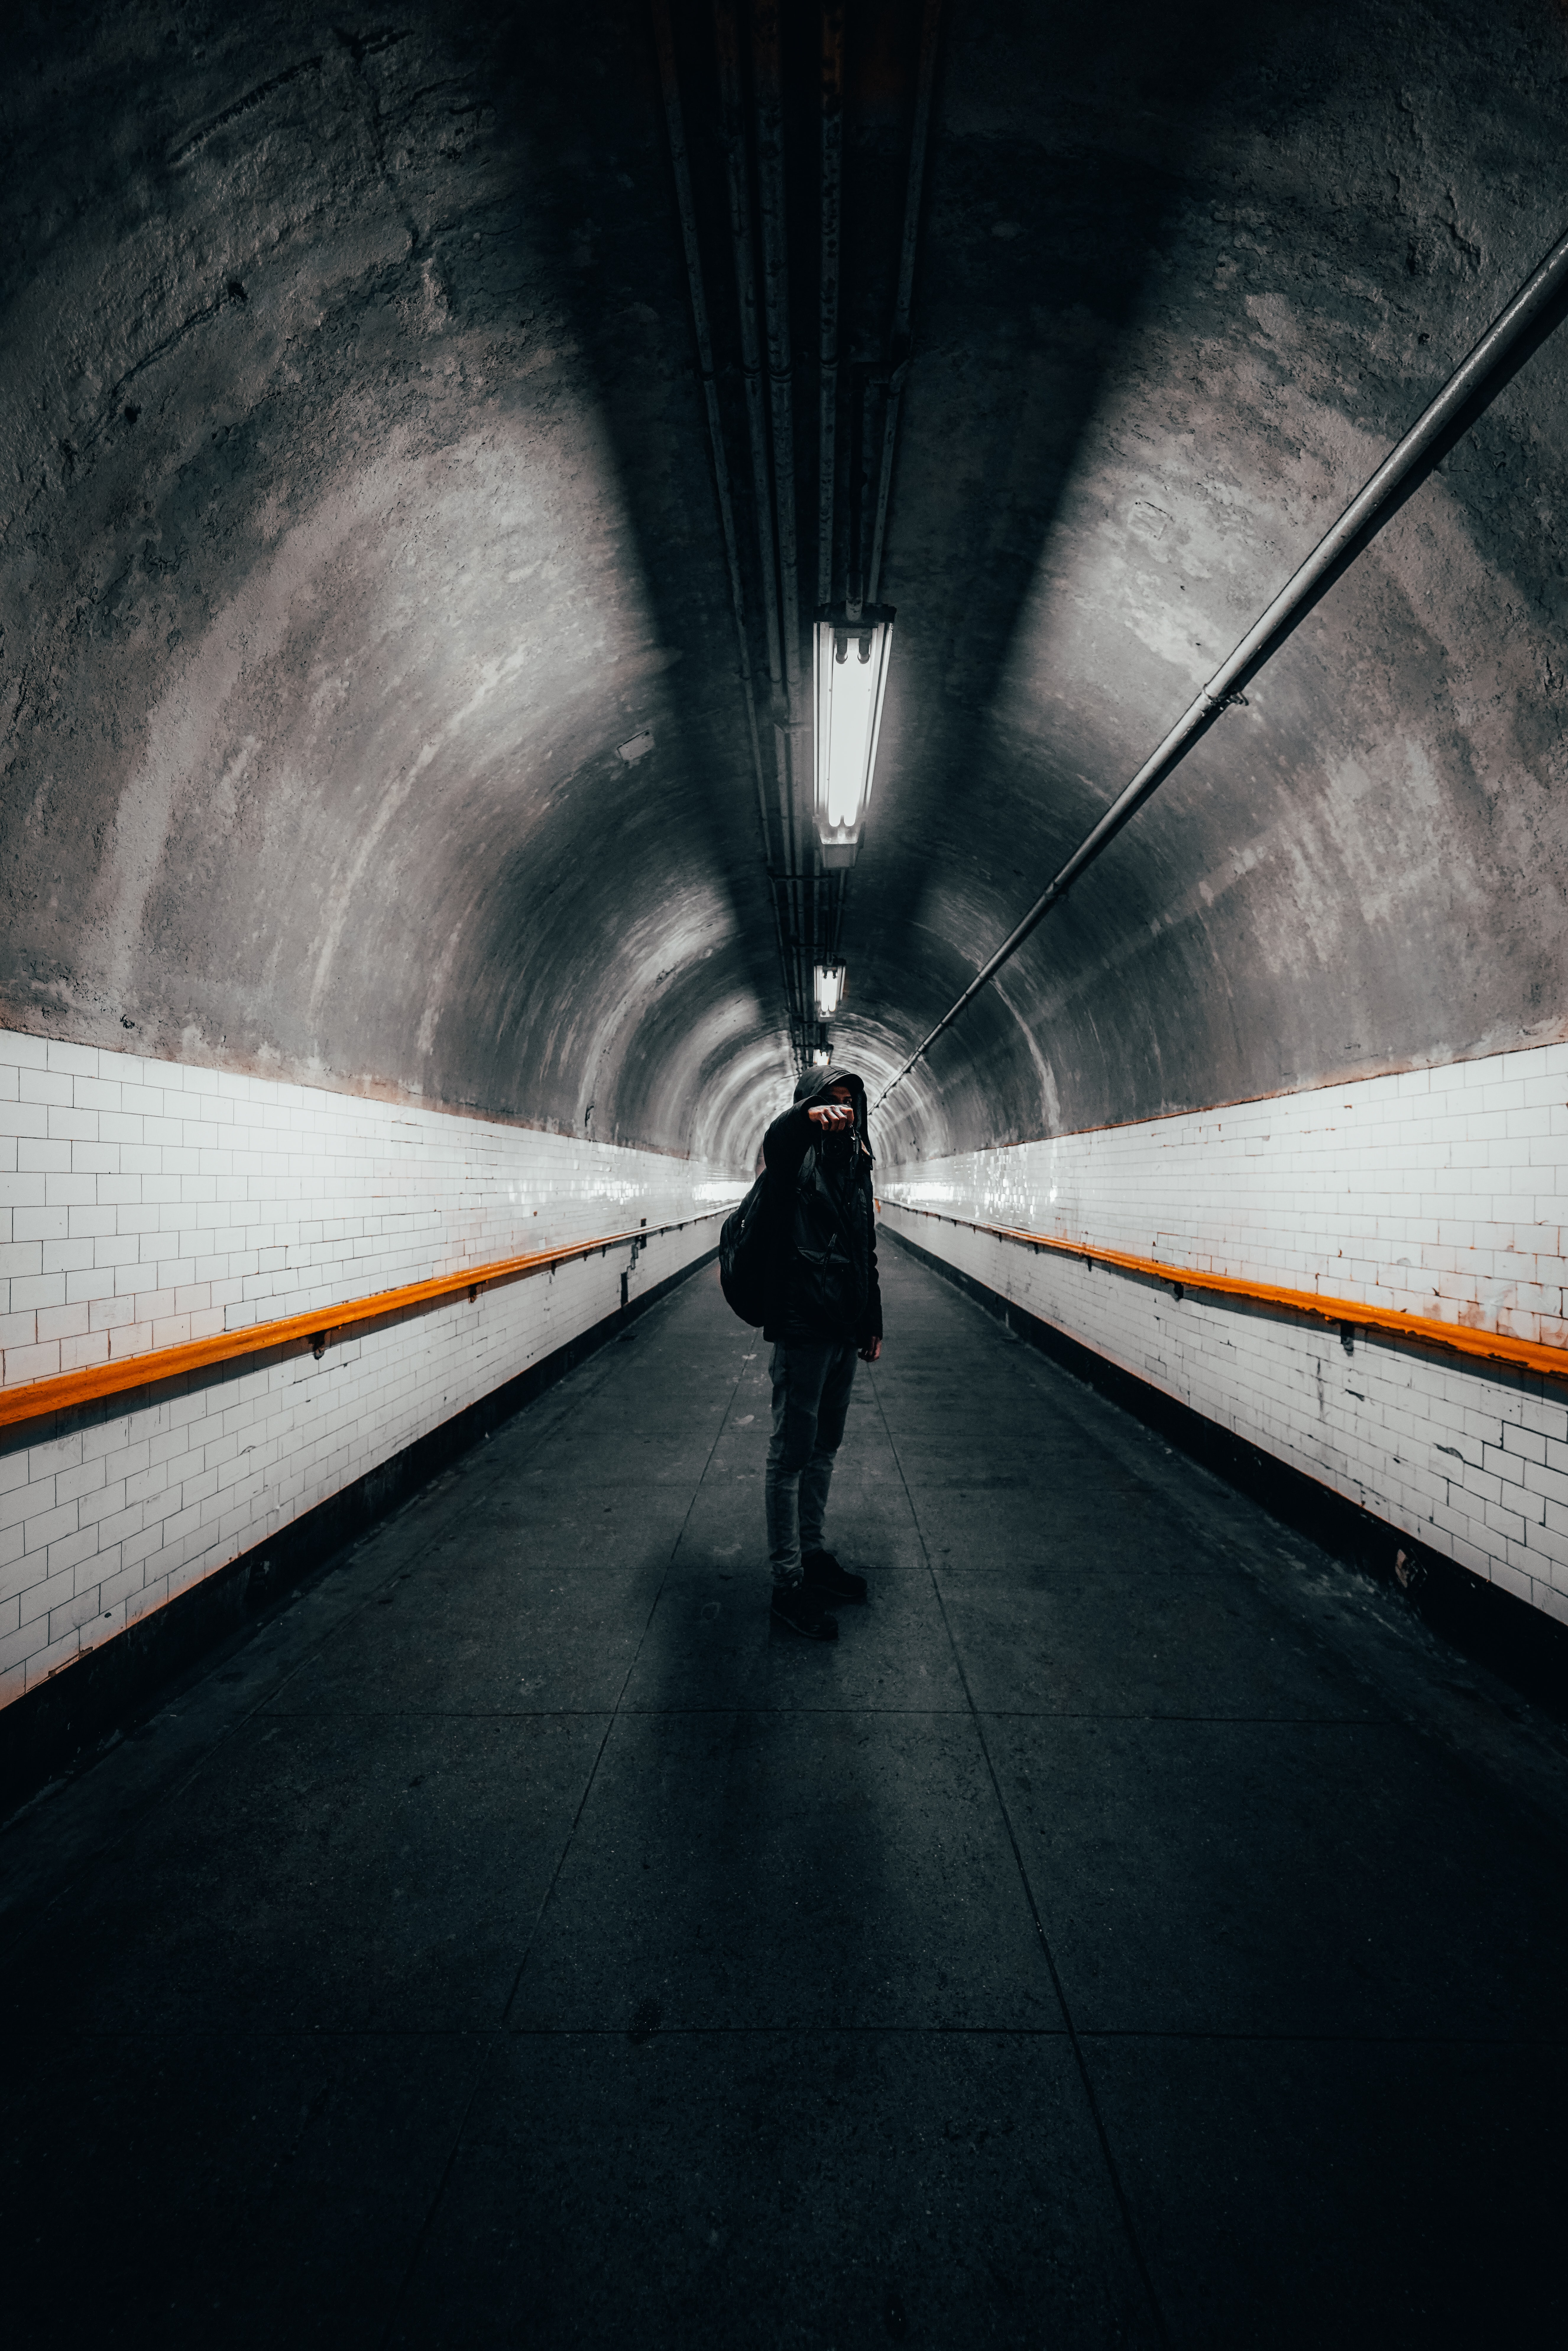 154442 Screensavers and Wallpapers Photographer for phone. Download Miscellanea, Miscellaneous, Human, Person, Loneliness, Photographer, Camera, Tunnel pictures for free